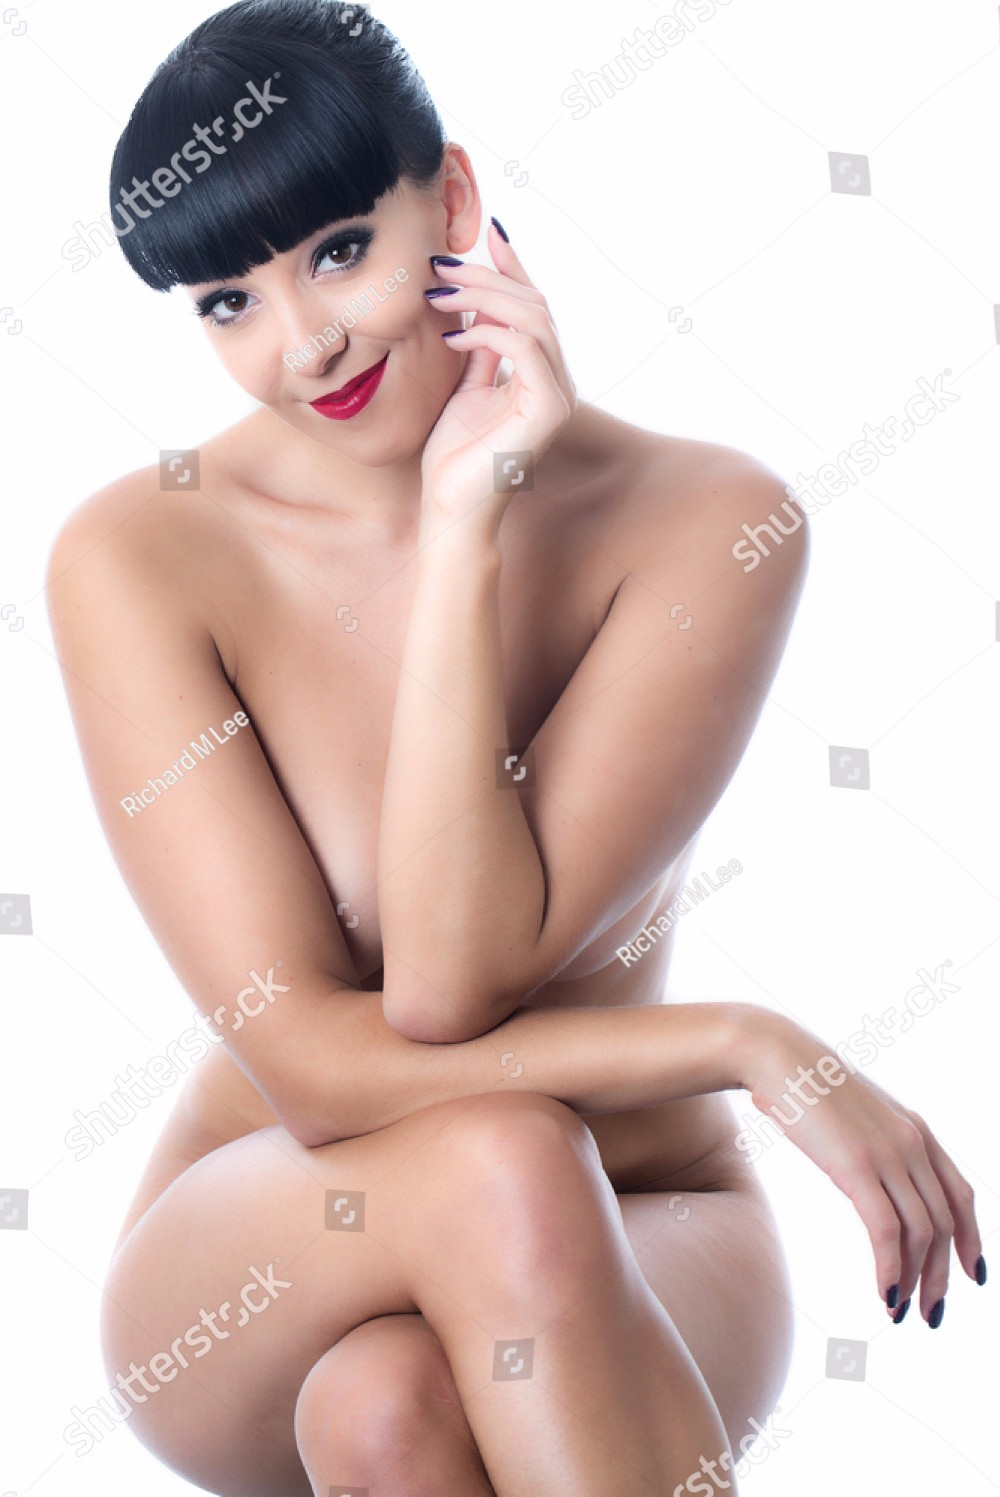 stock-photo-nude-young-lady-sitting-on-a-stool-163722839.jpg